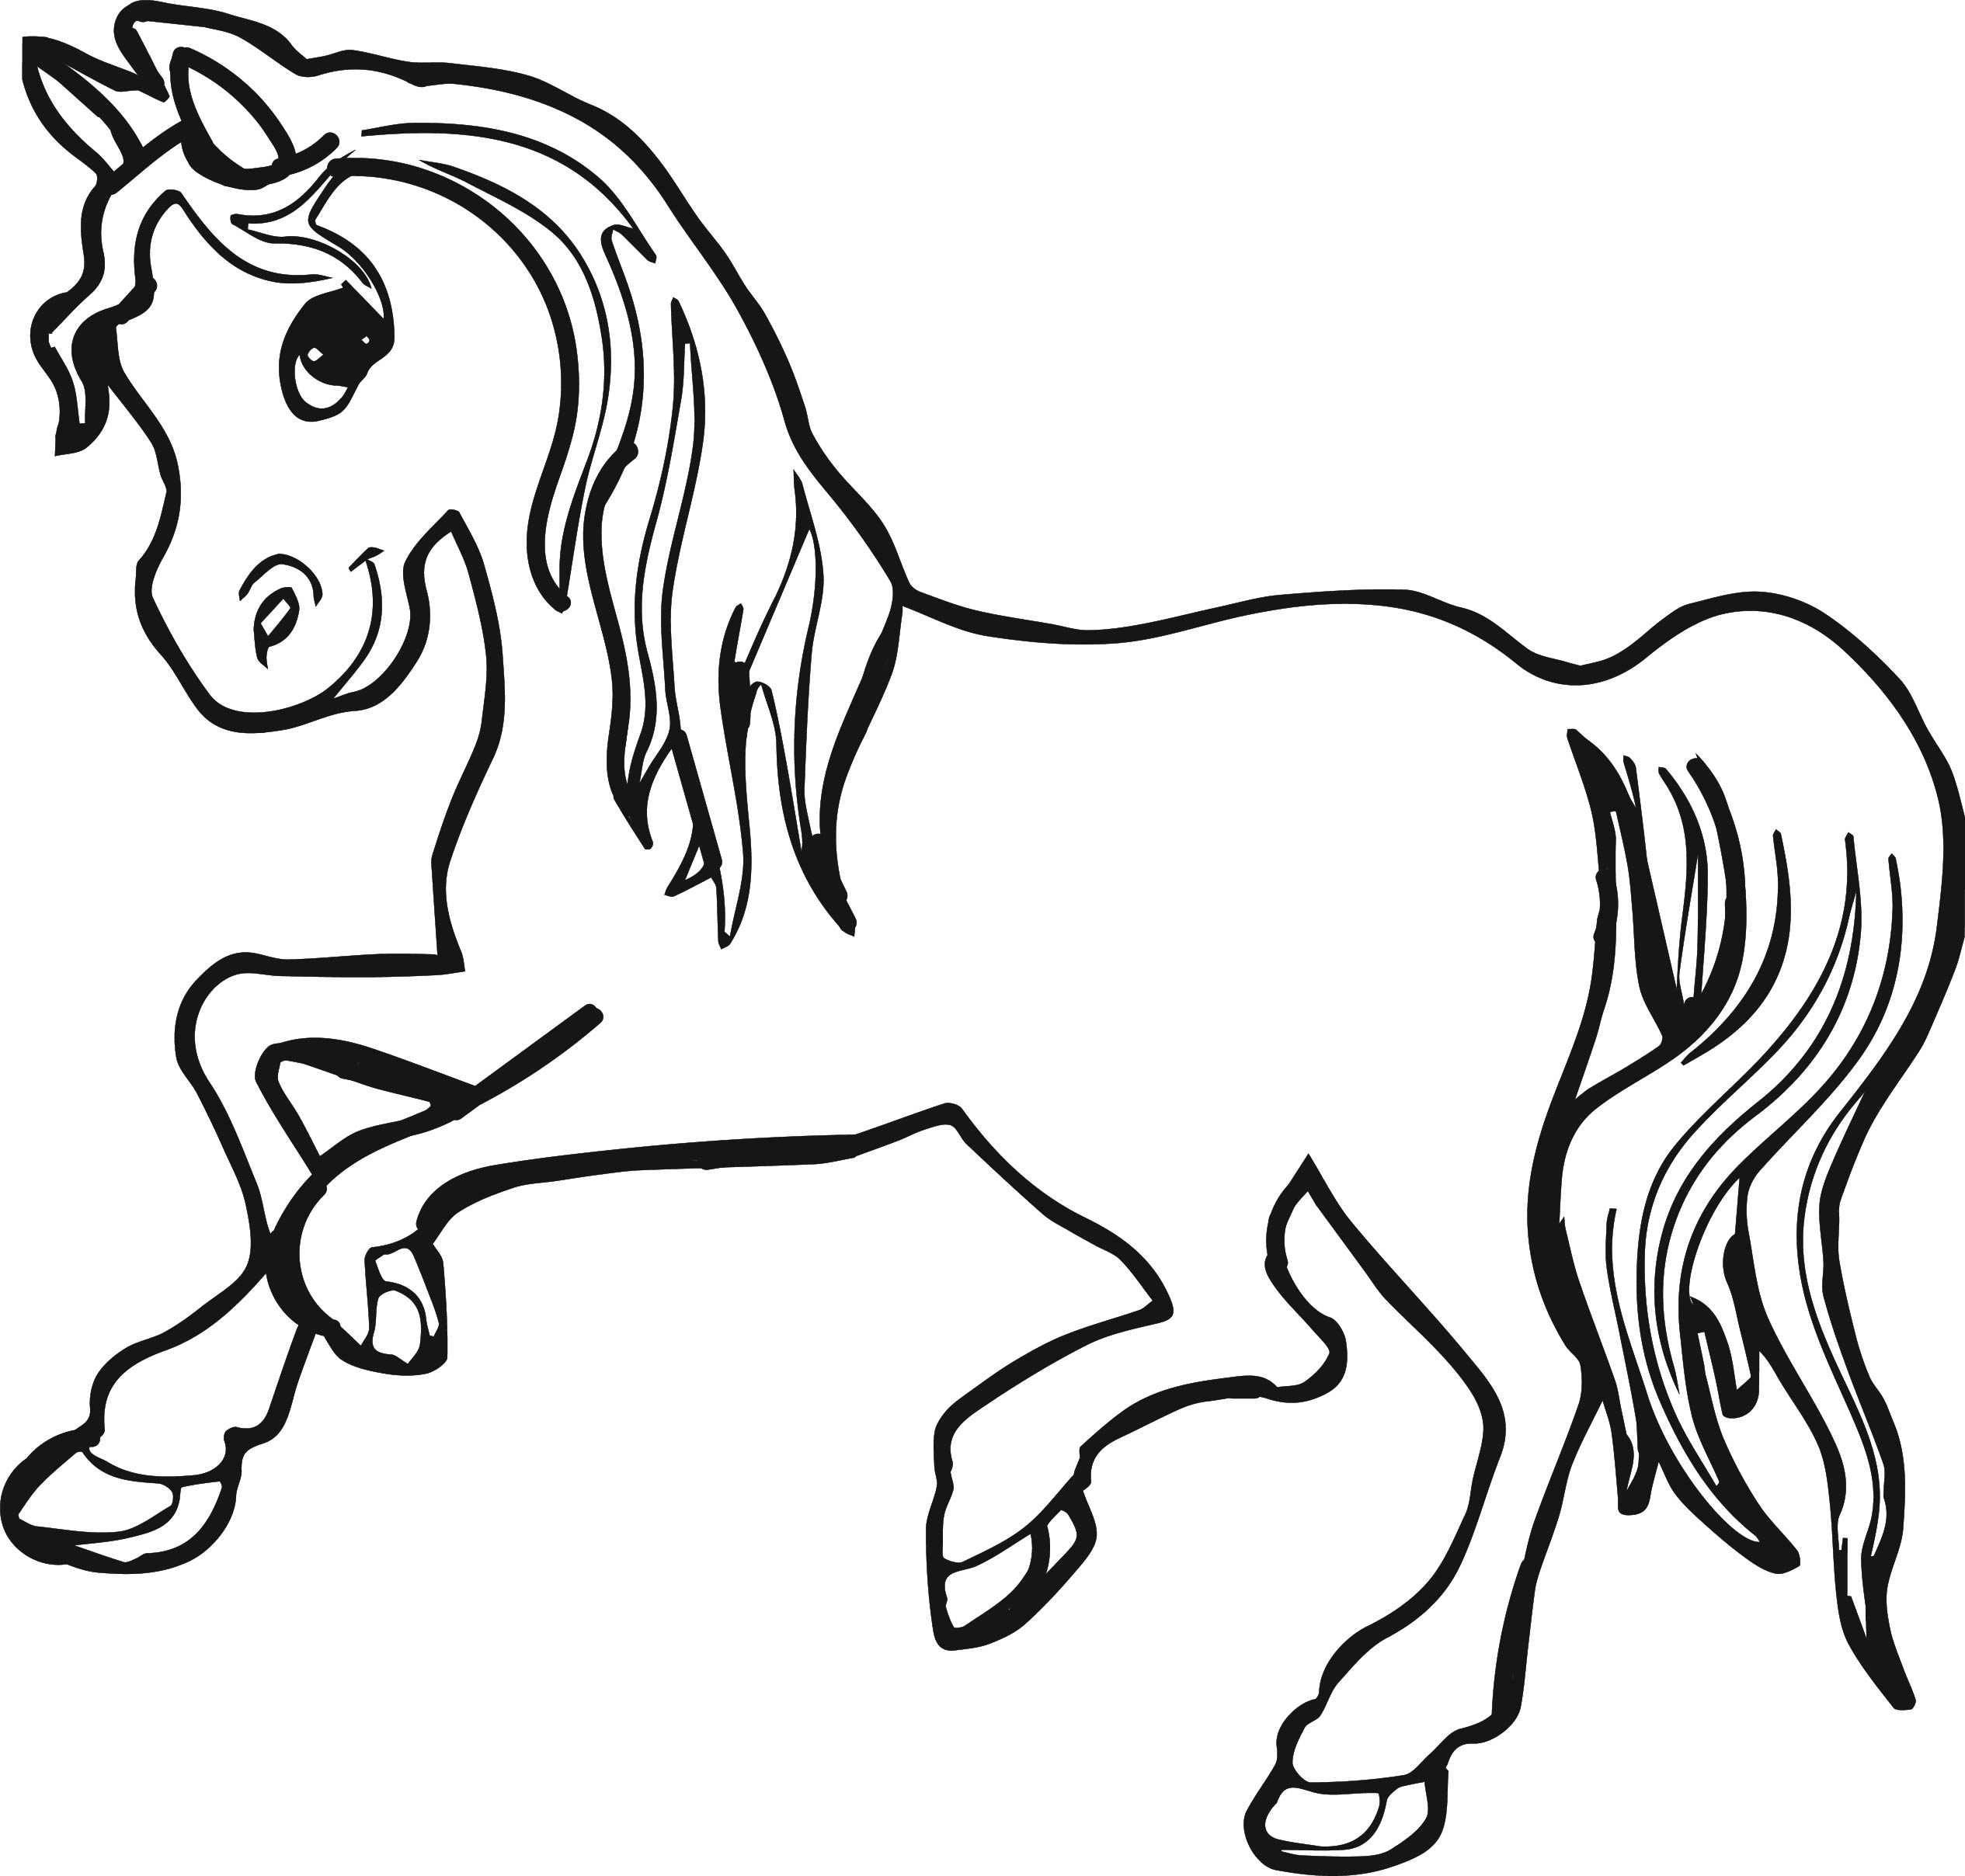 coloring page of horse 30 printable horse coloring pages horse coloring of page